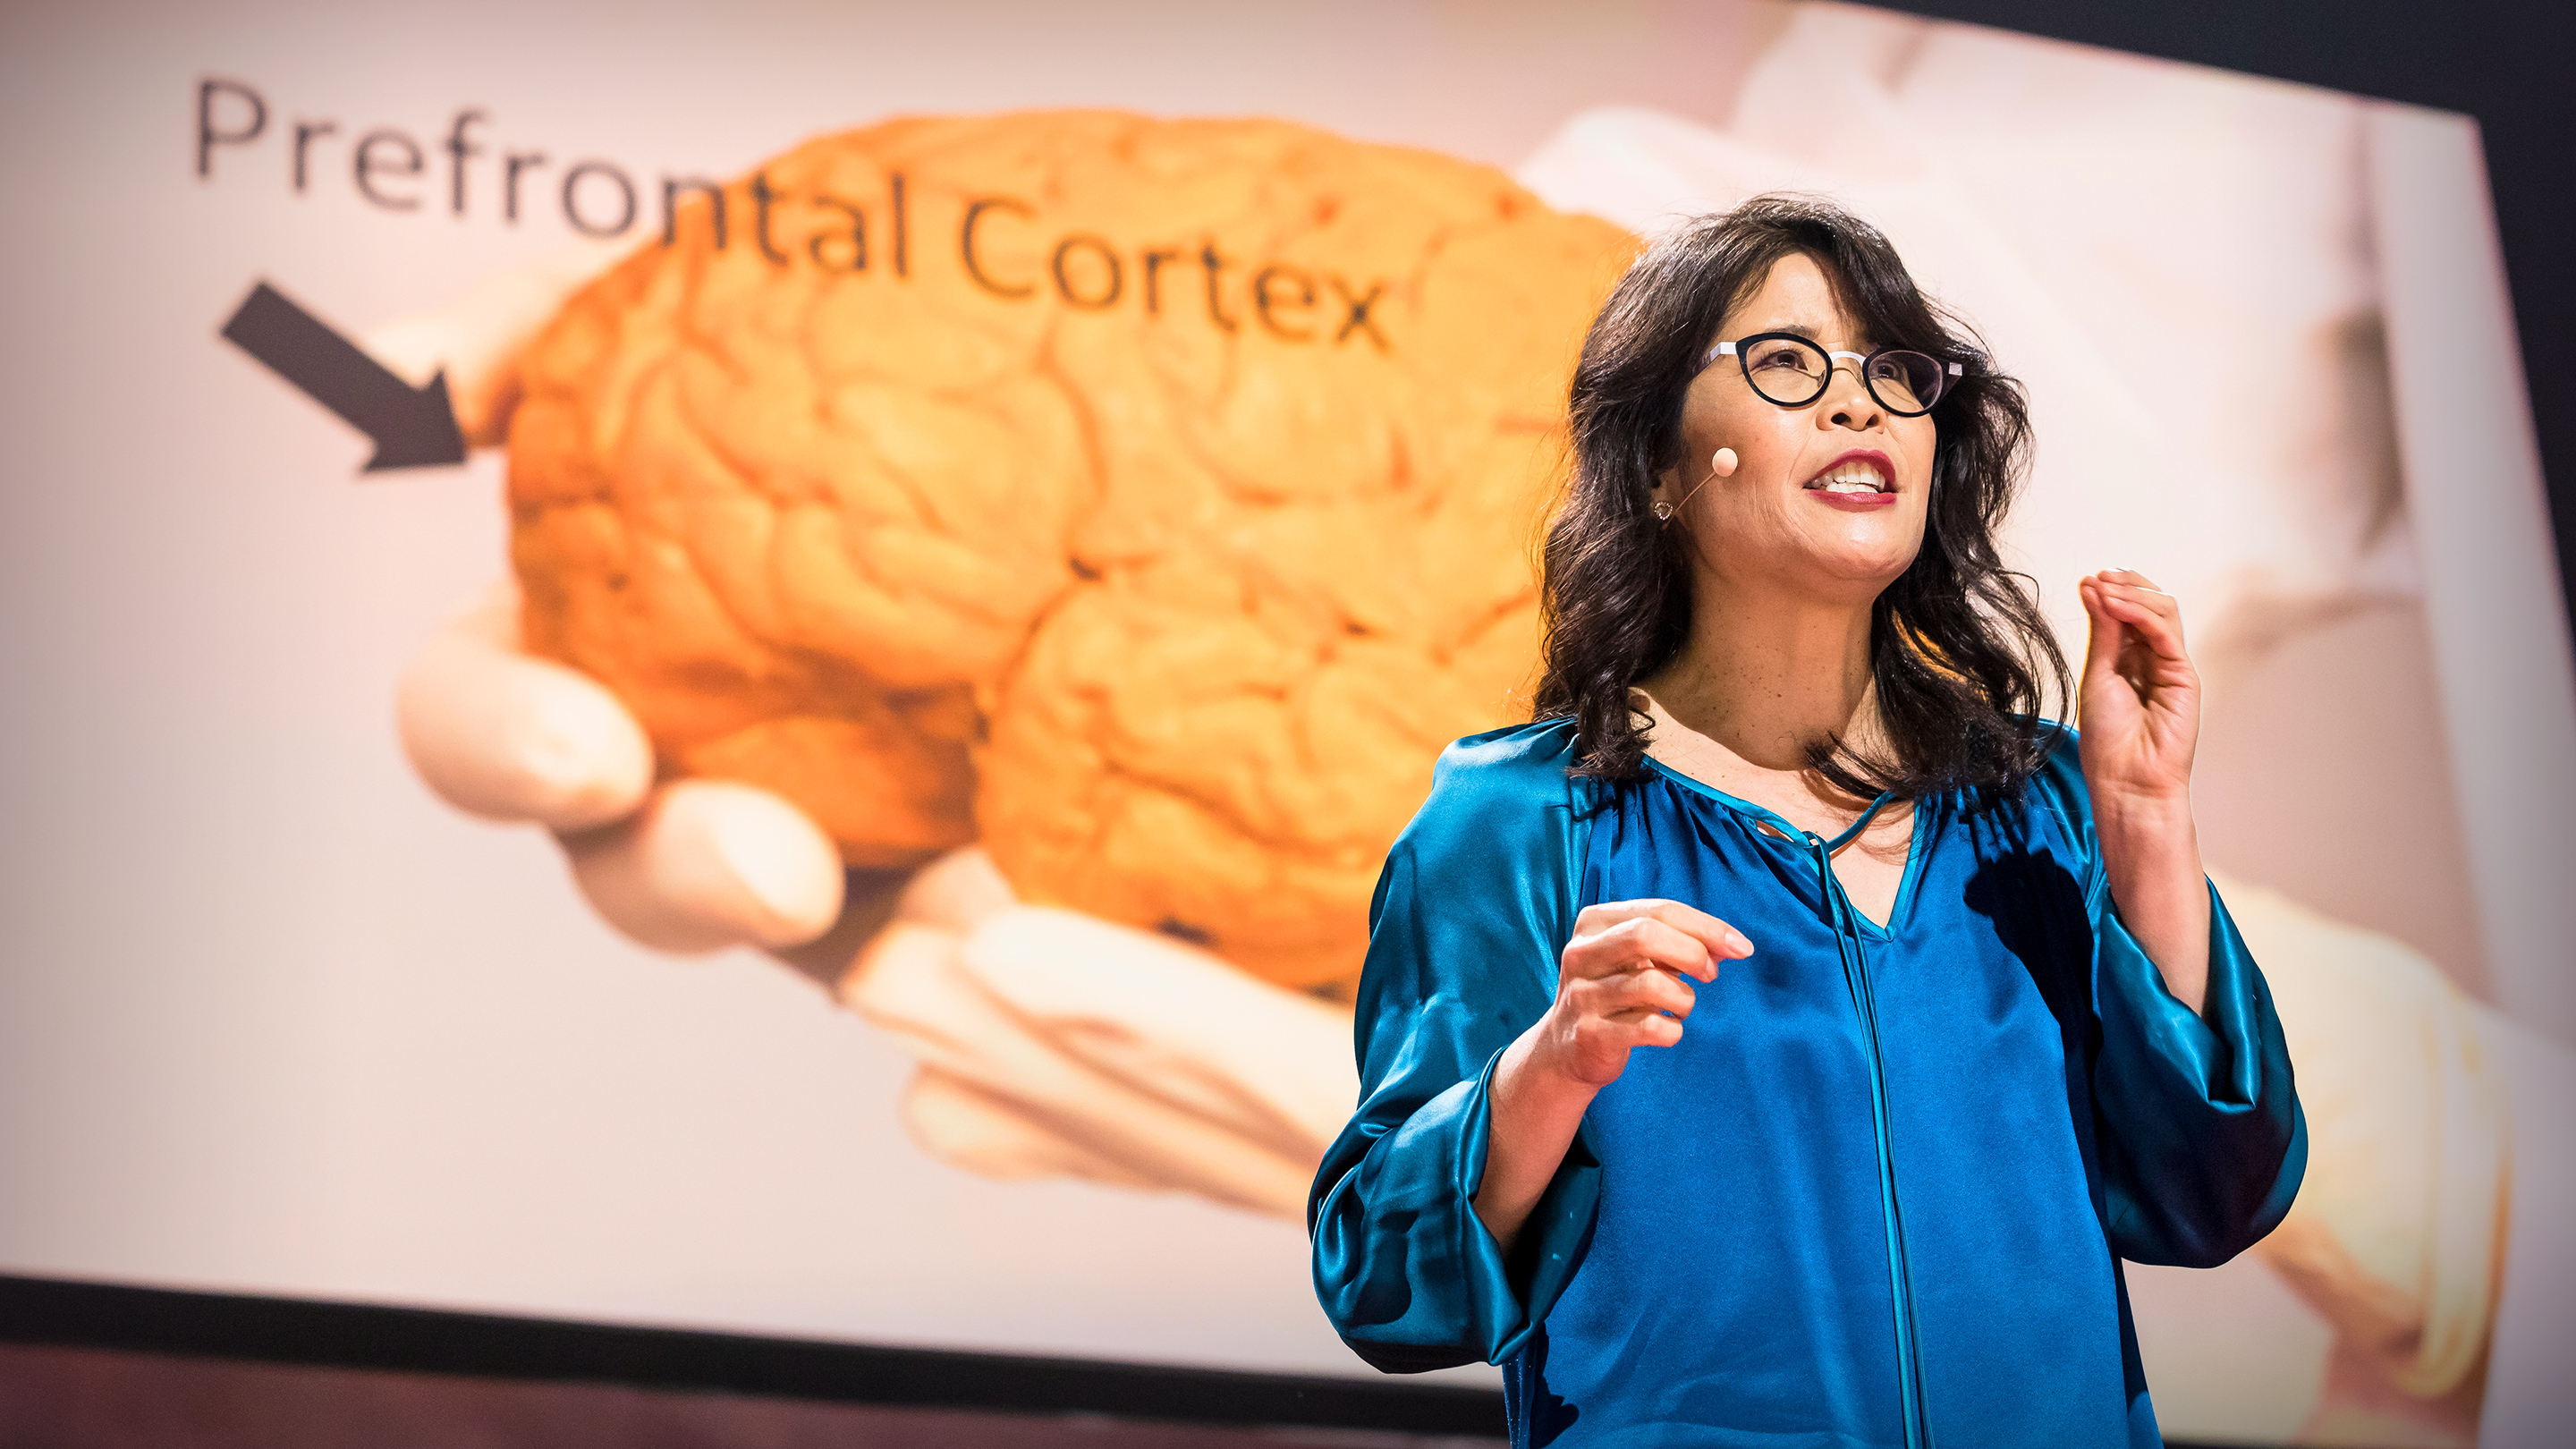 Exercise Makes Kids Brains More >> Wendy Suzuki The Brain Changing Benefits Of Exercise Ted Talk